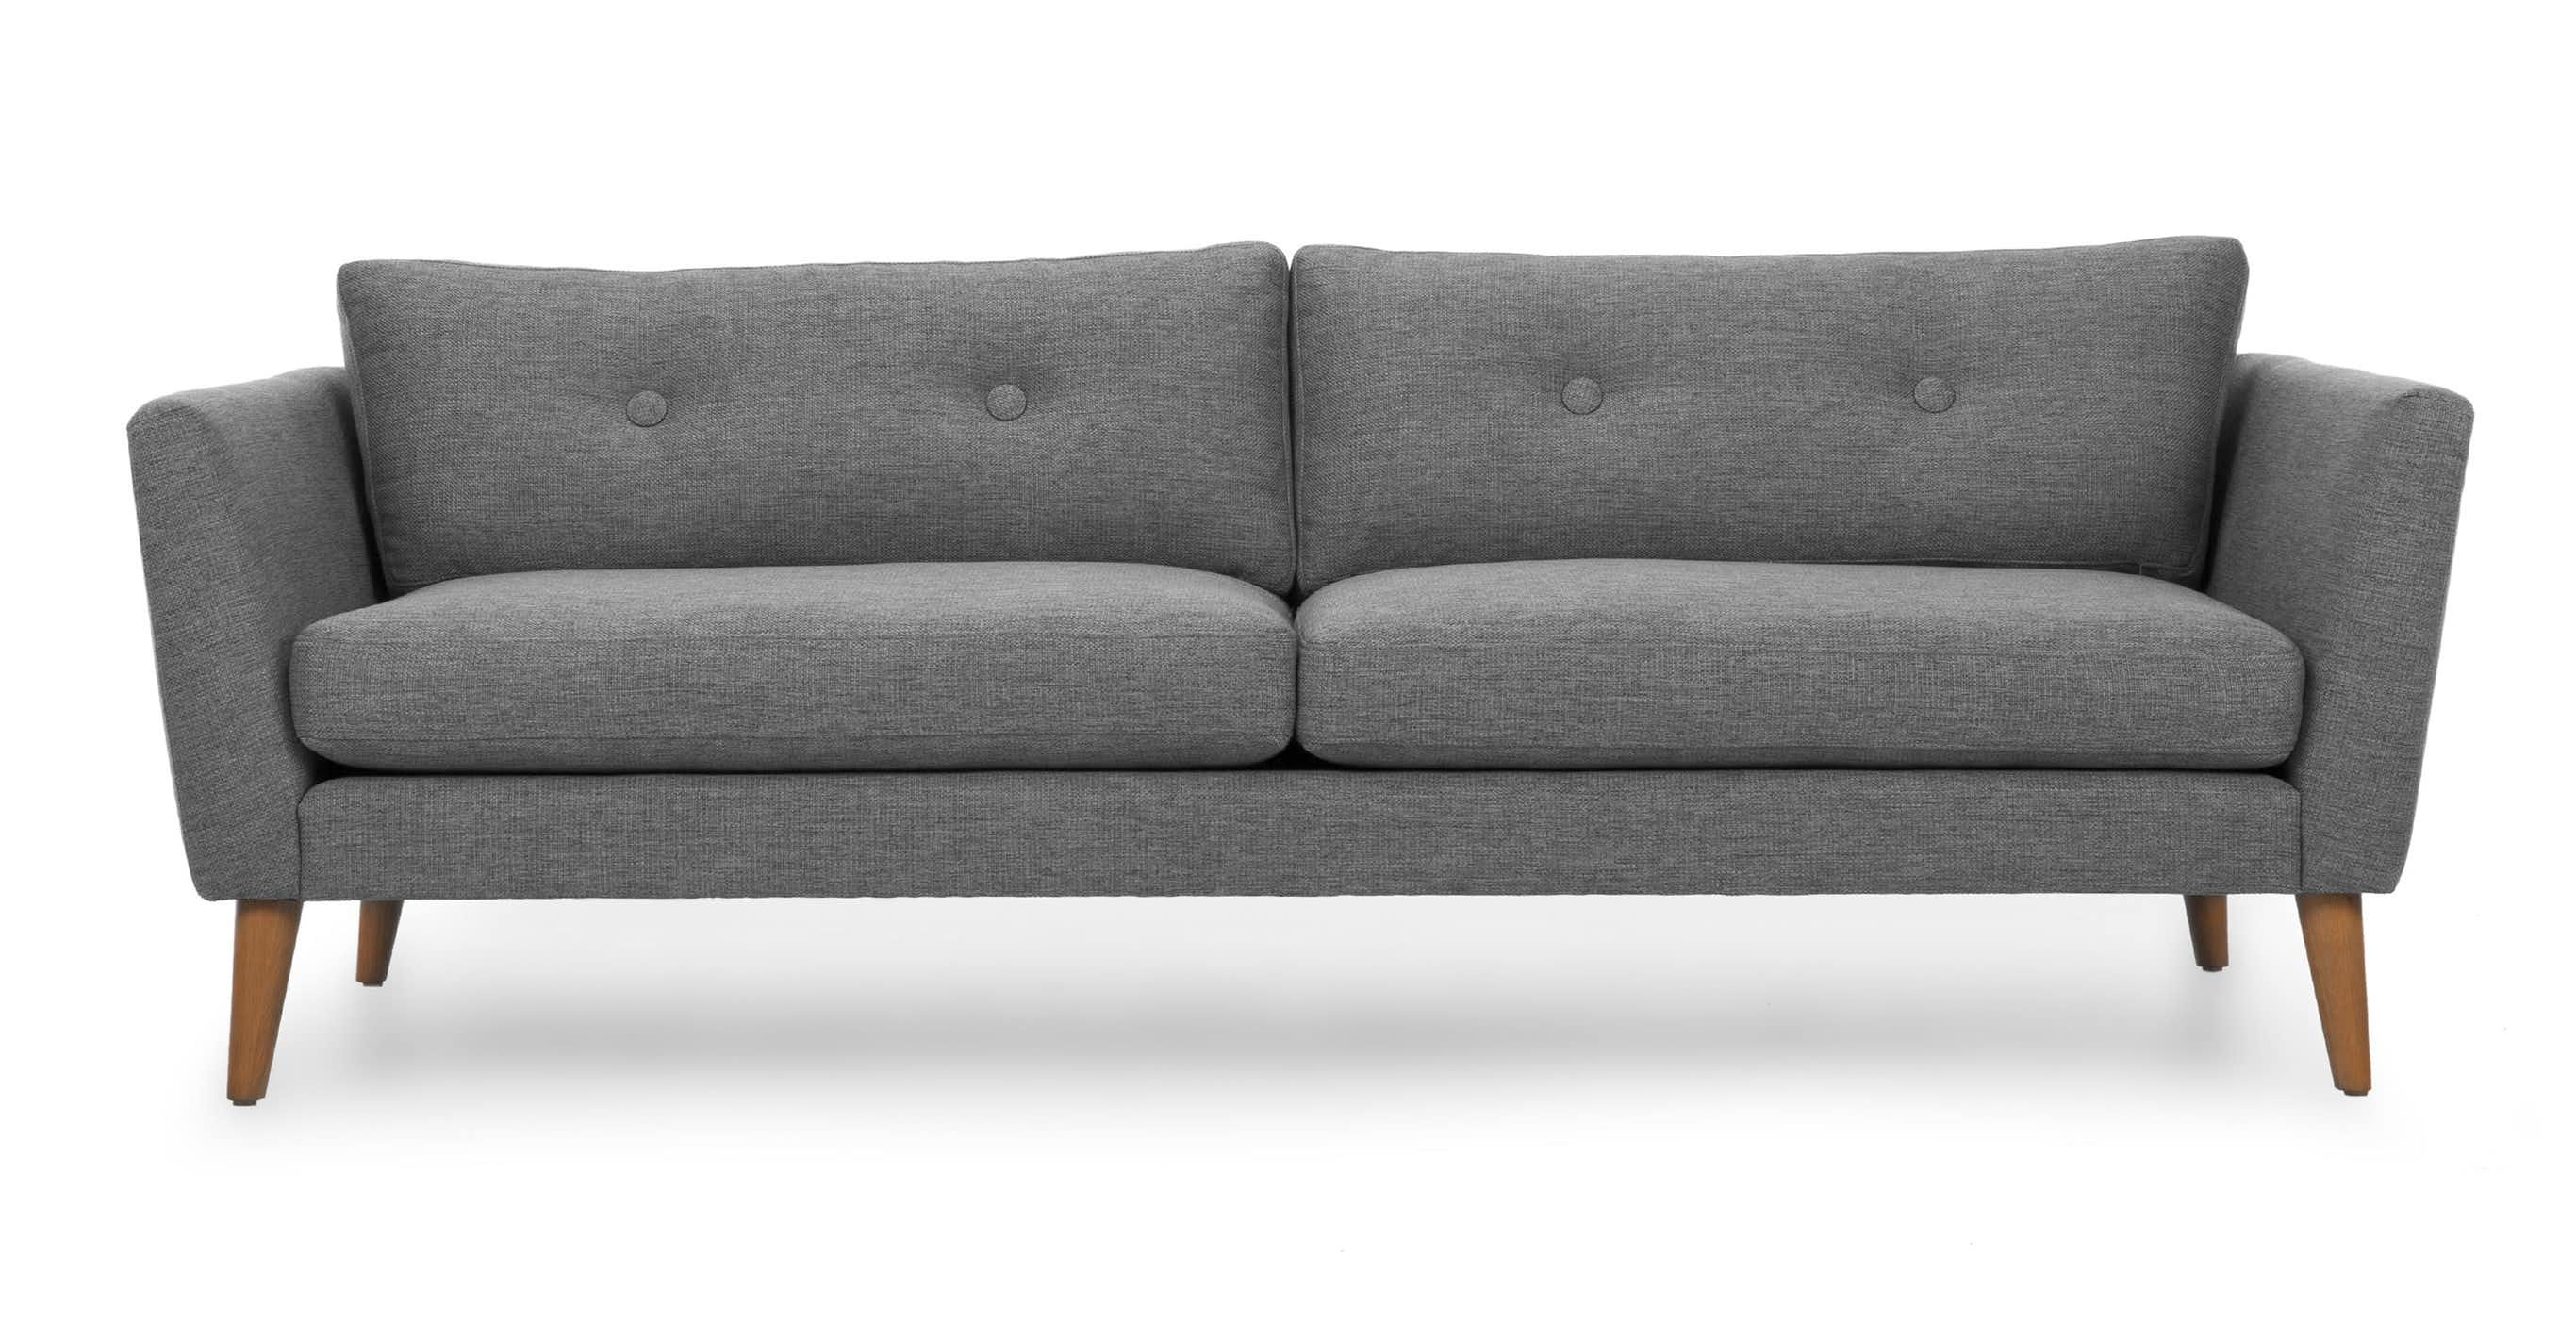 Colour Slipcovers Pillows Covers Couch Placement Glamour Schemes Throughout Aquarius Dark Grey Sofa Chairs (Photo 6 of 20)